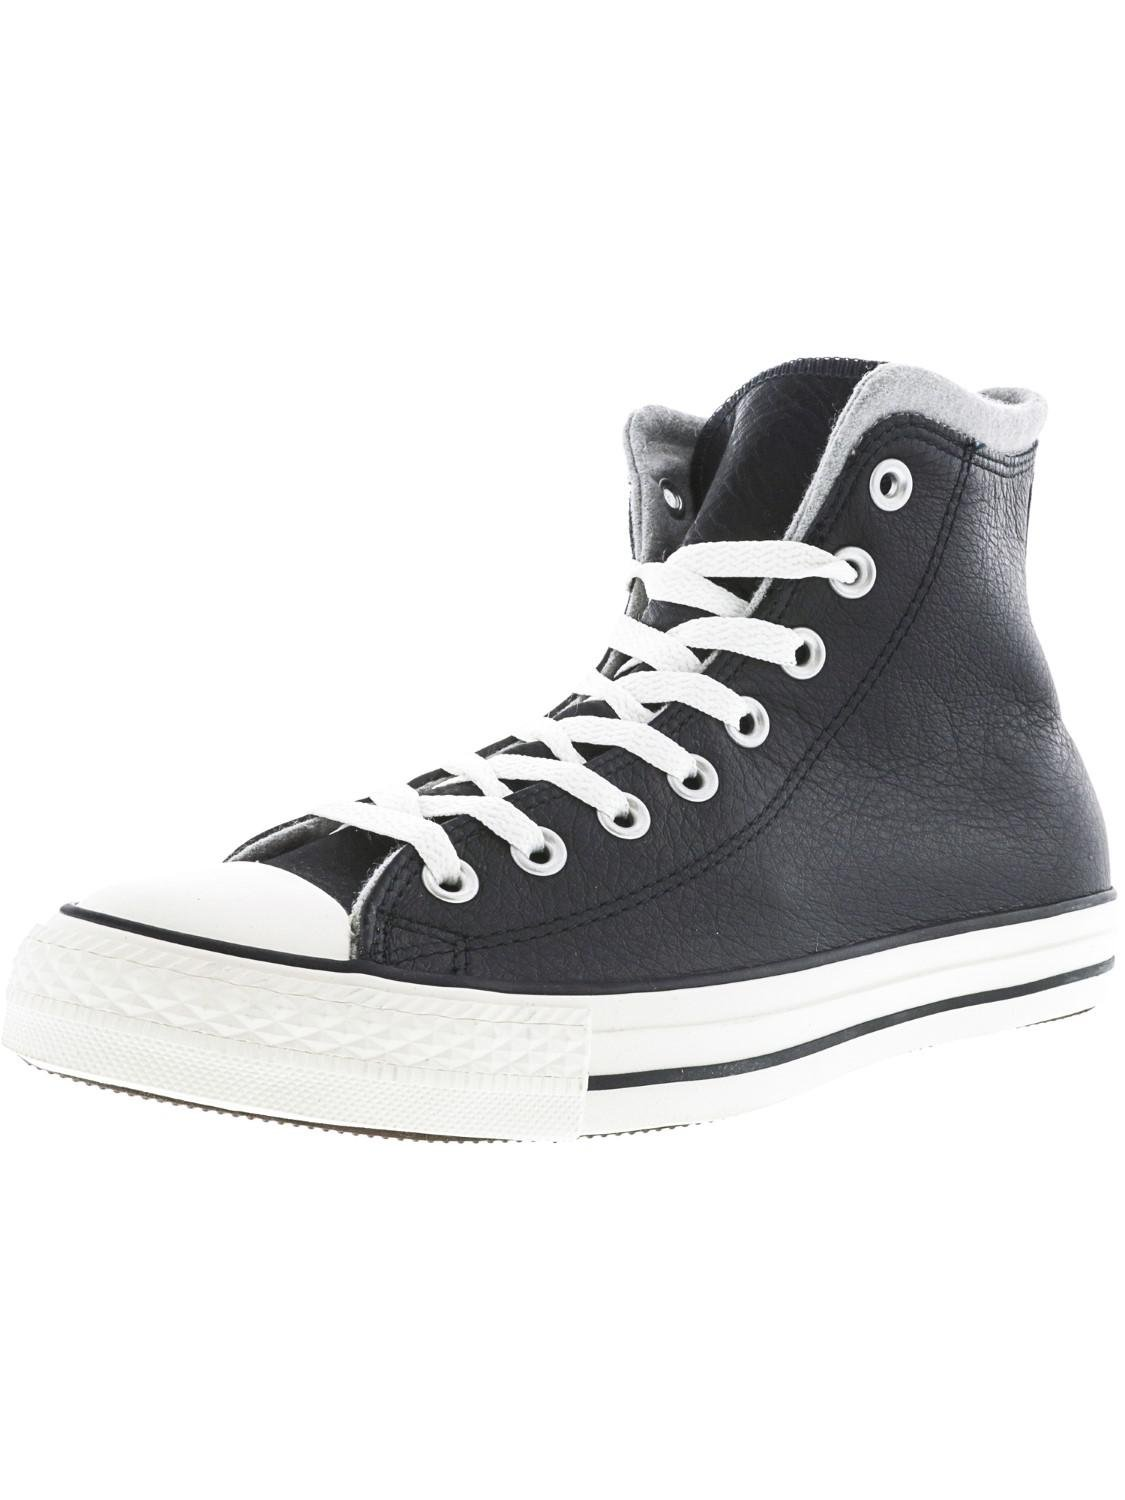 Lyst - Converse Chuck Taylor All Star Hi Black   Egret Dolphin High ... d6be15275